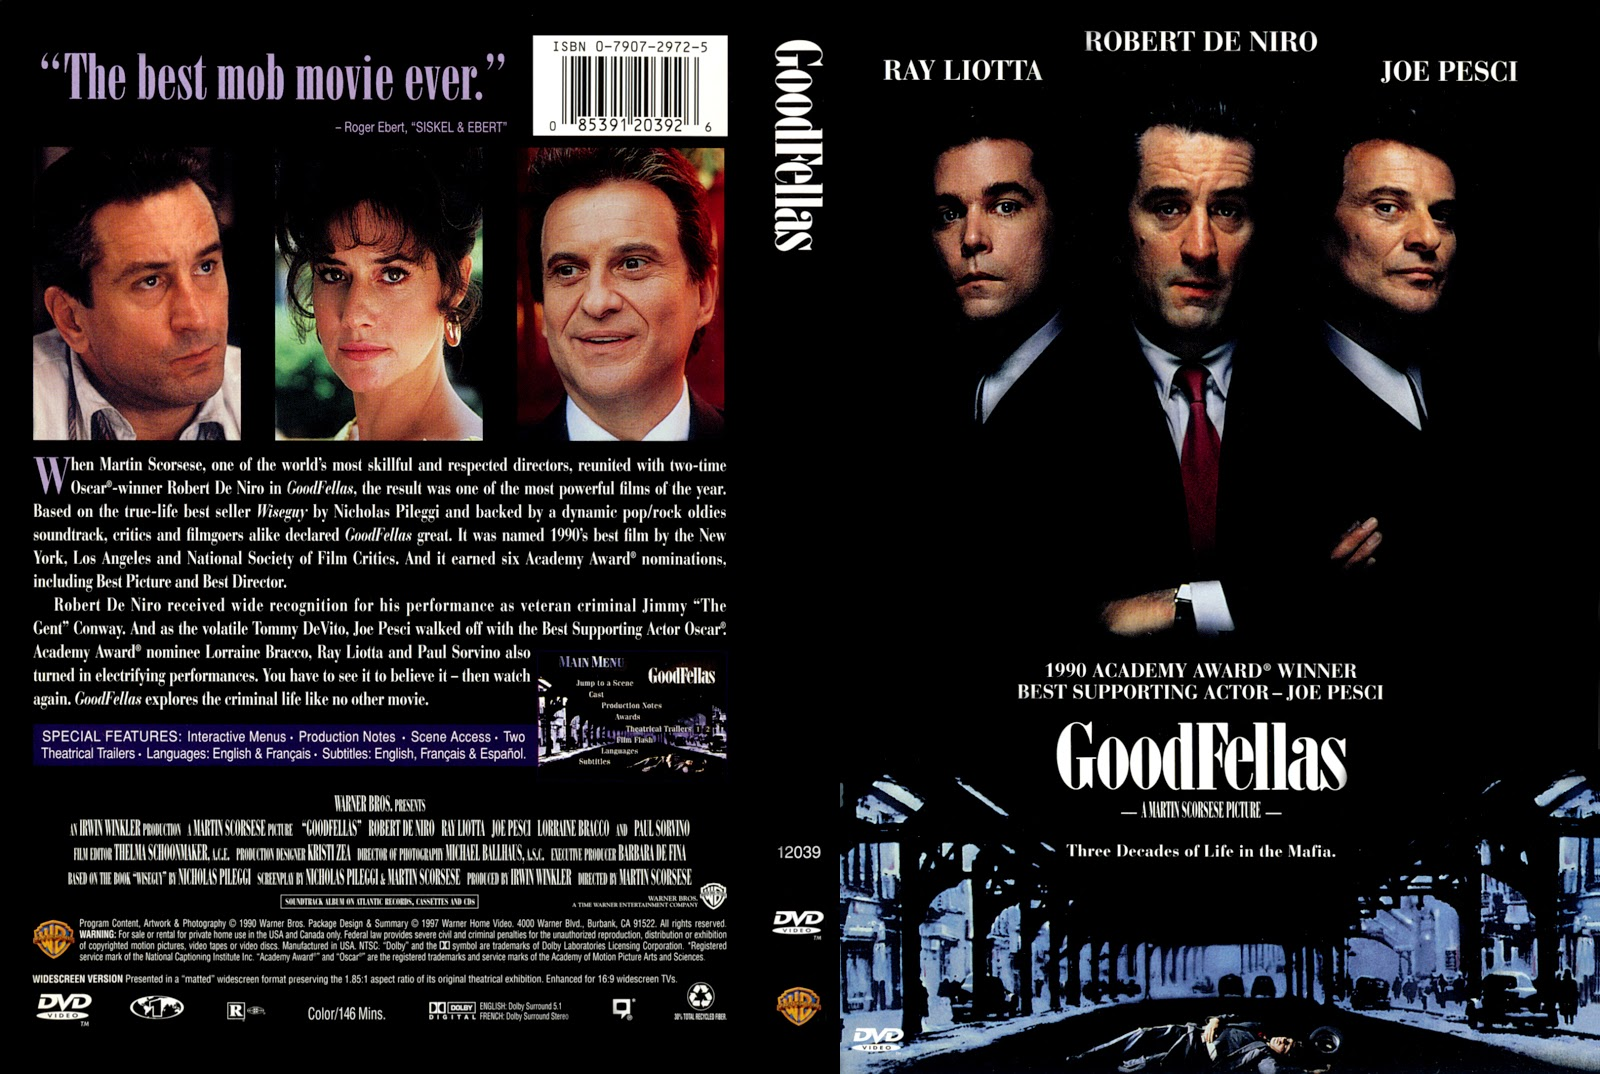 Goodfellas-Dvd-Cover